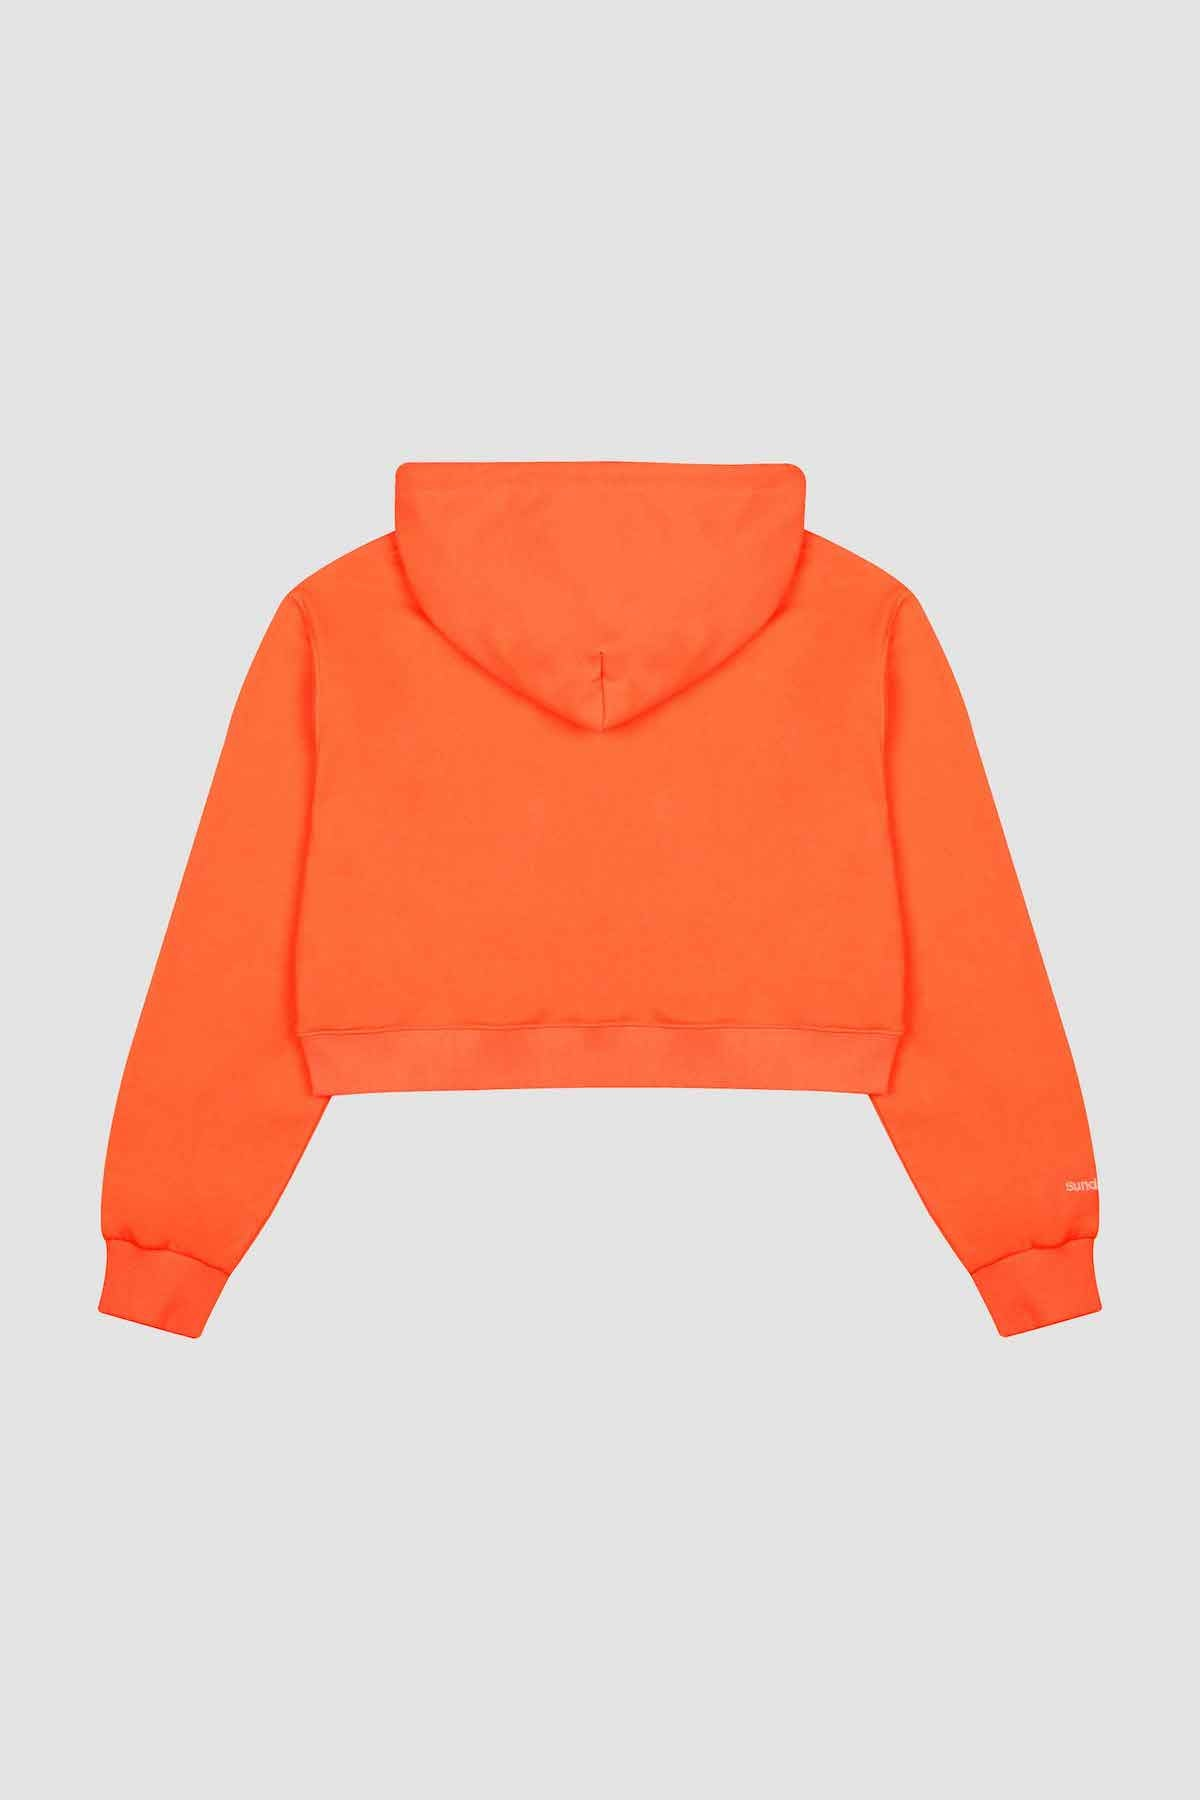 Photo of Hallabong Women's Cropped Hoodie, number 3